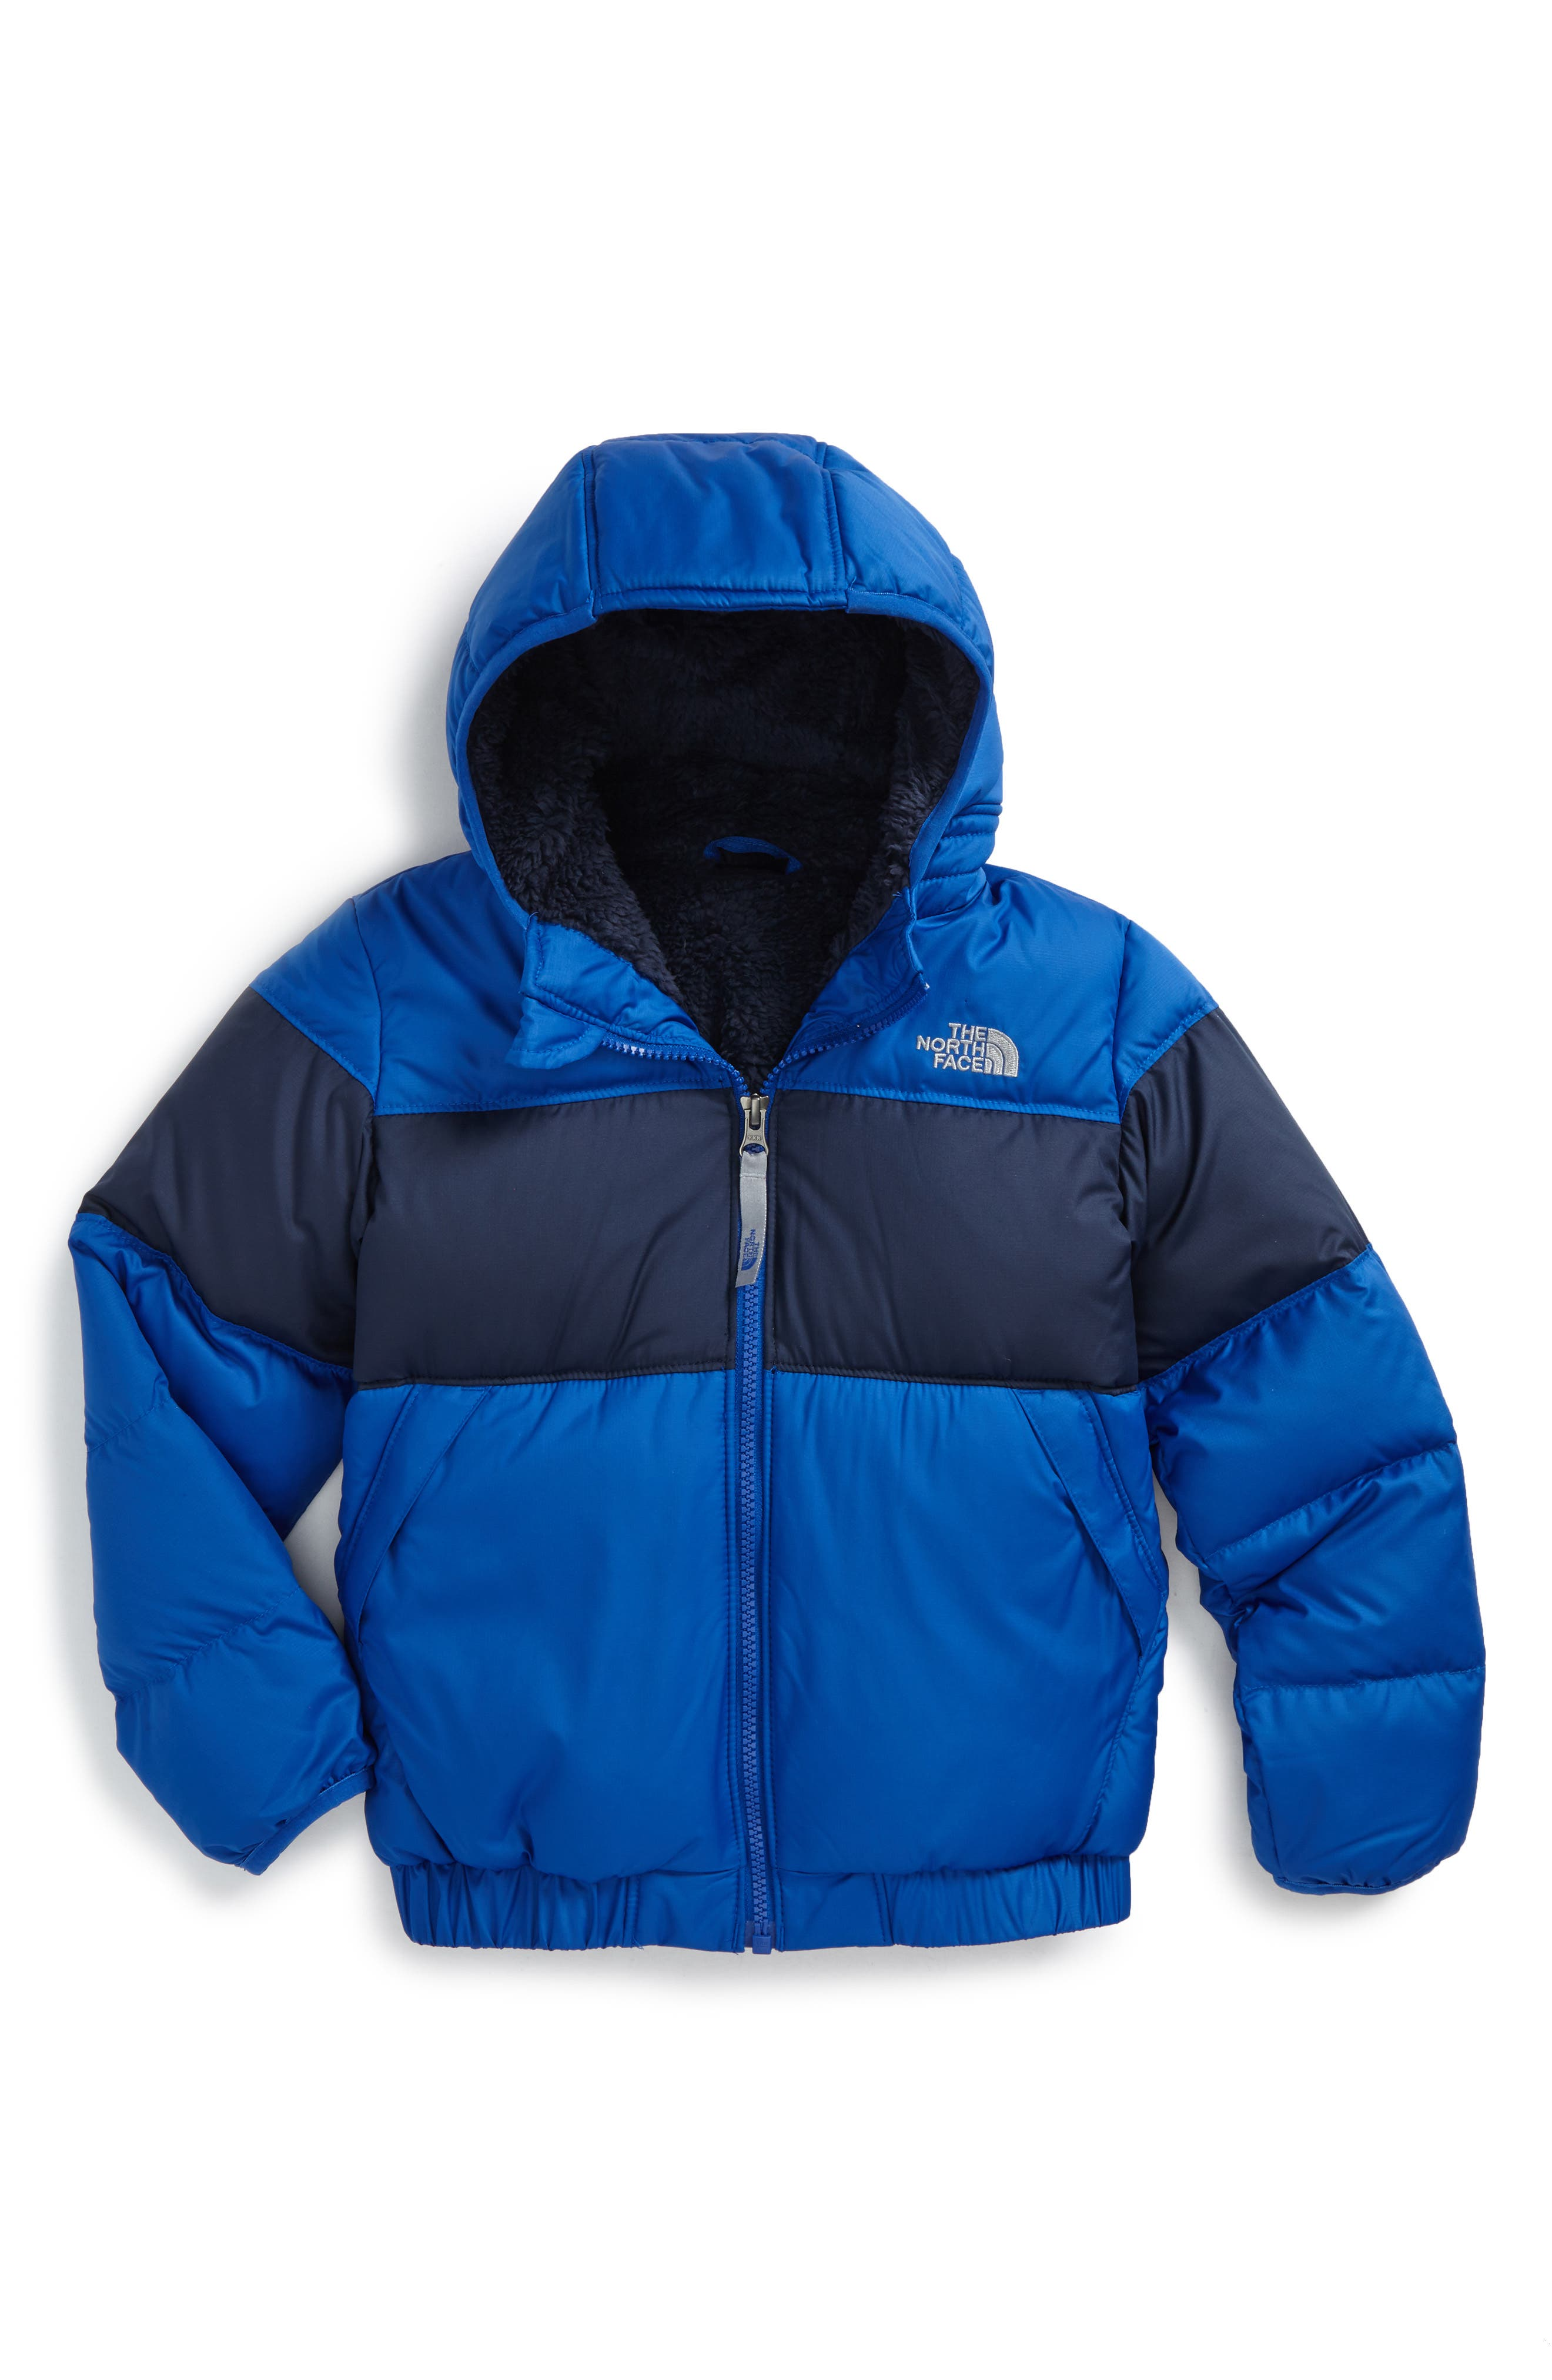 Moondoggy 2.0 Water Repellent Down Jacket,                             Main thumbnail 1, color,                             Bright Cobalt Blue